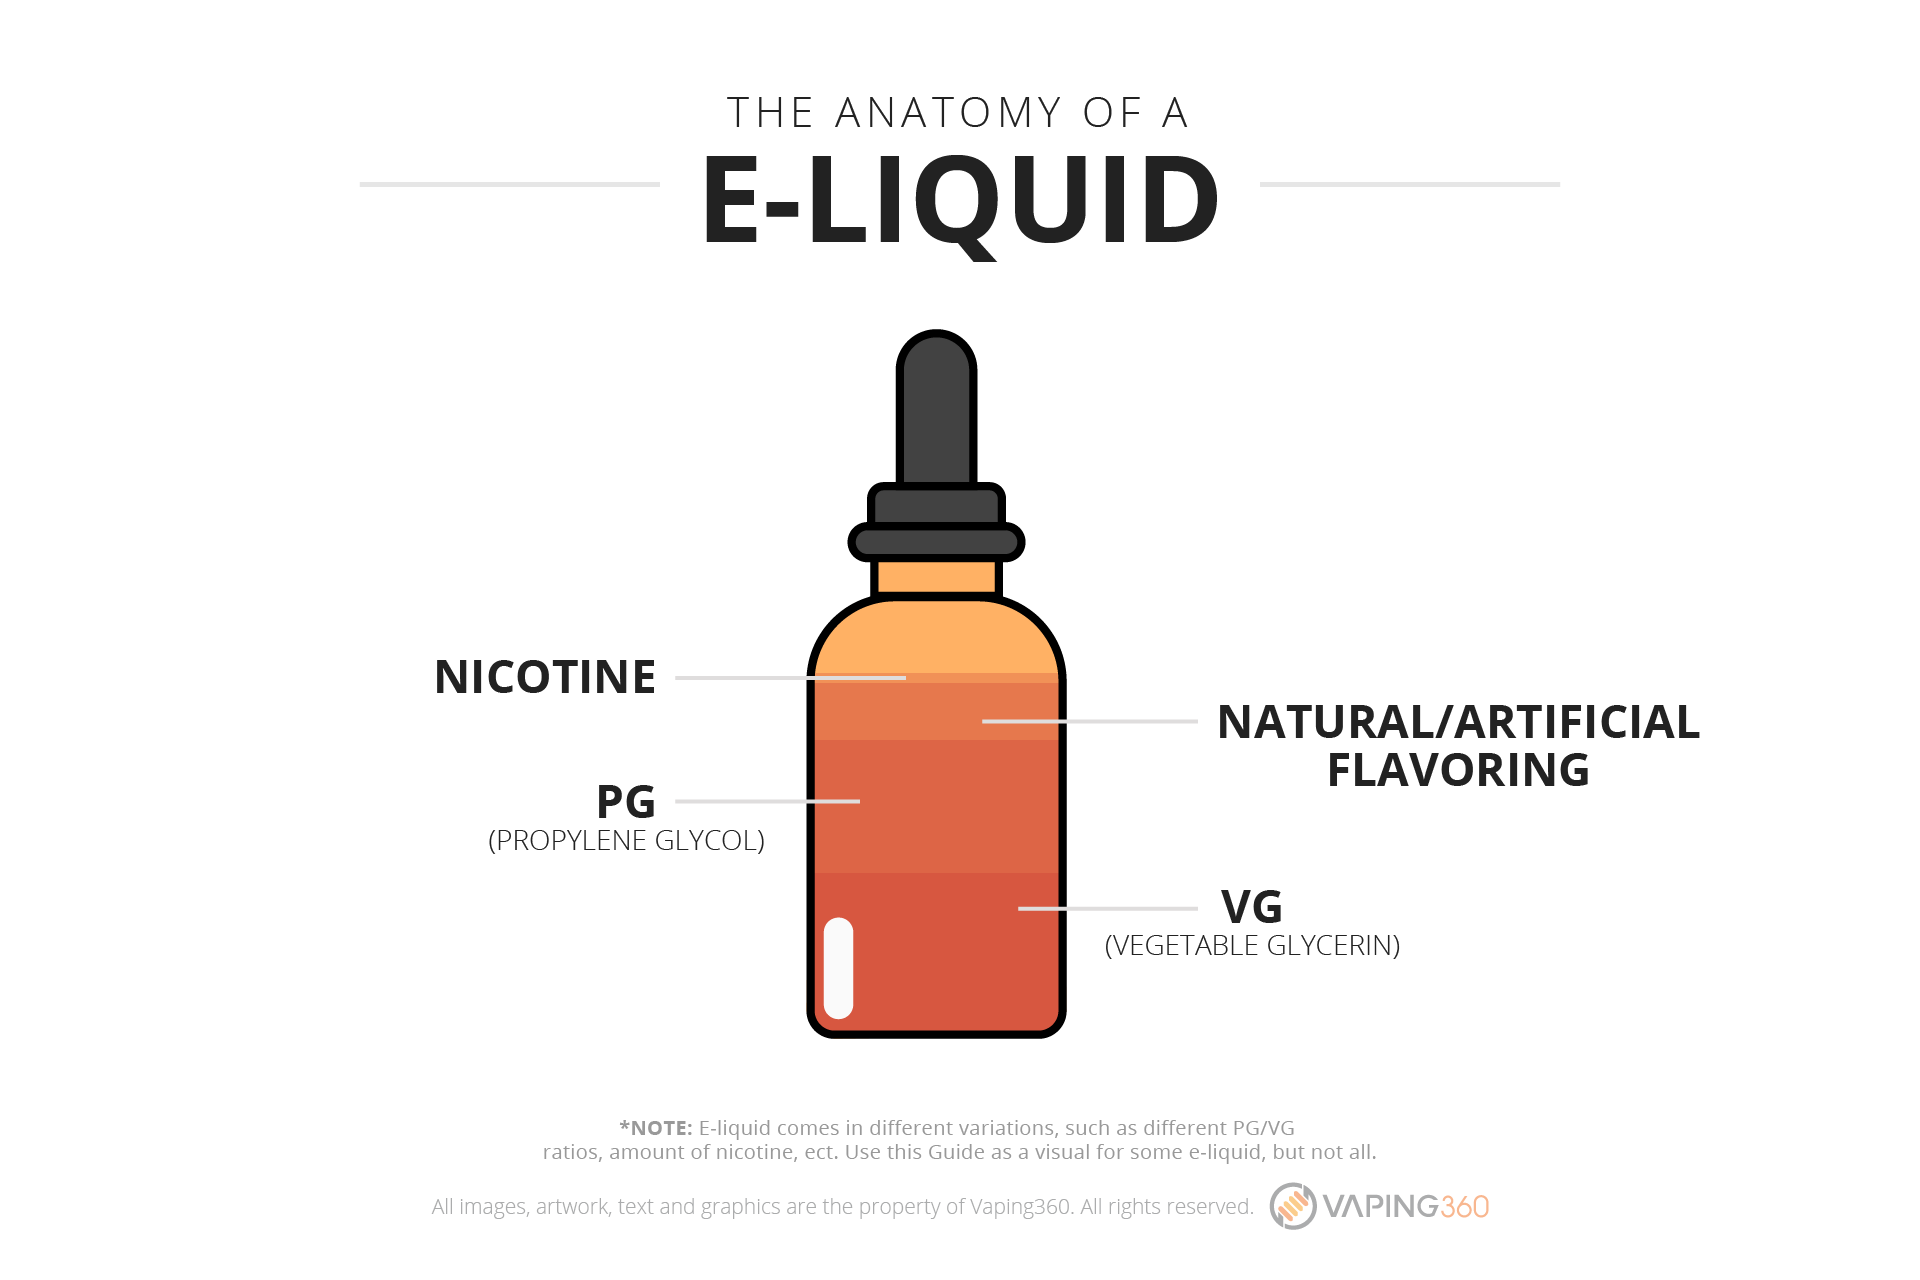 the-anatomy-of-a-e-liquid